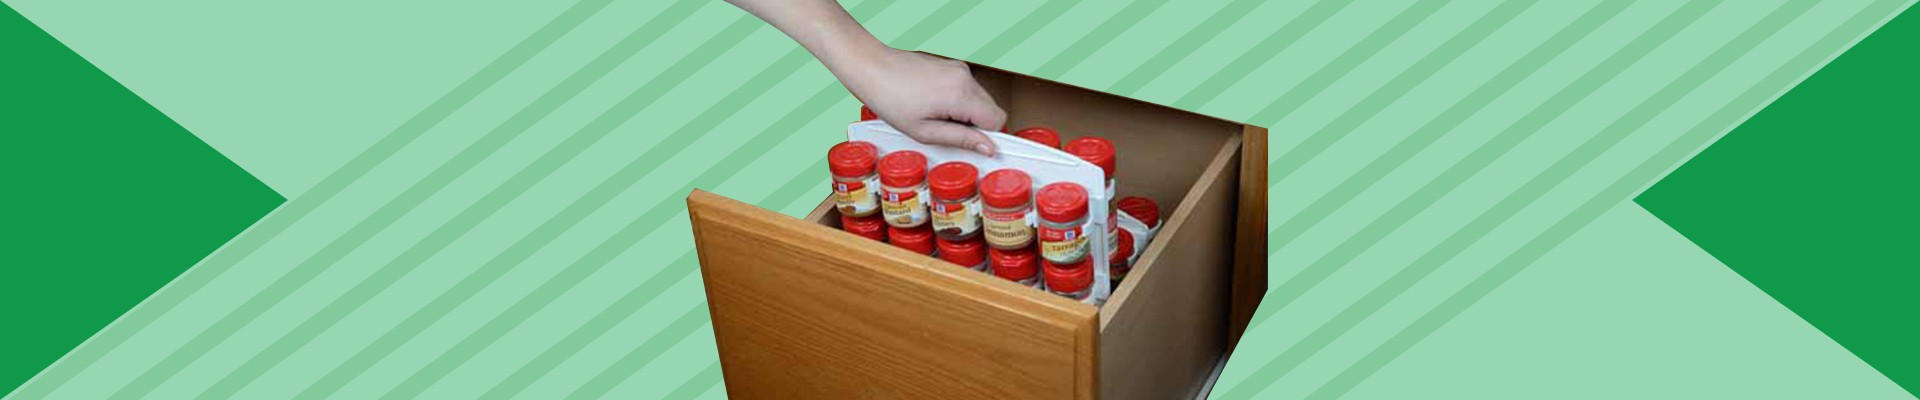 Organize those spices in your kitchen.